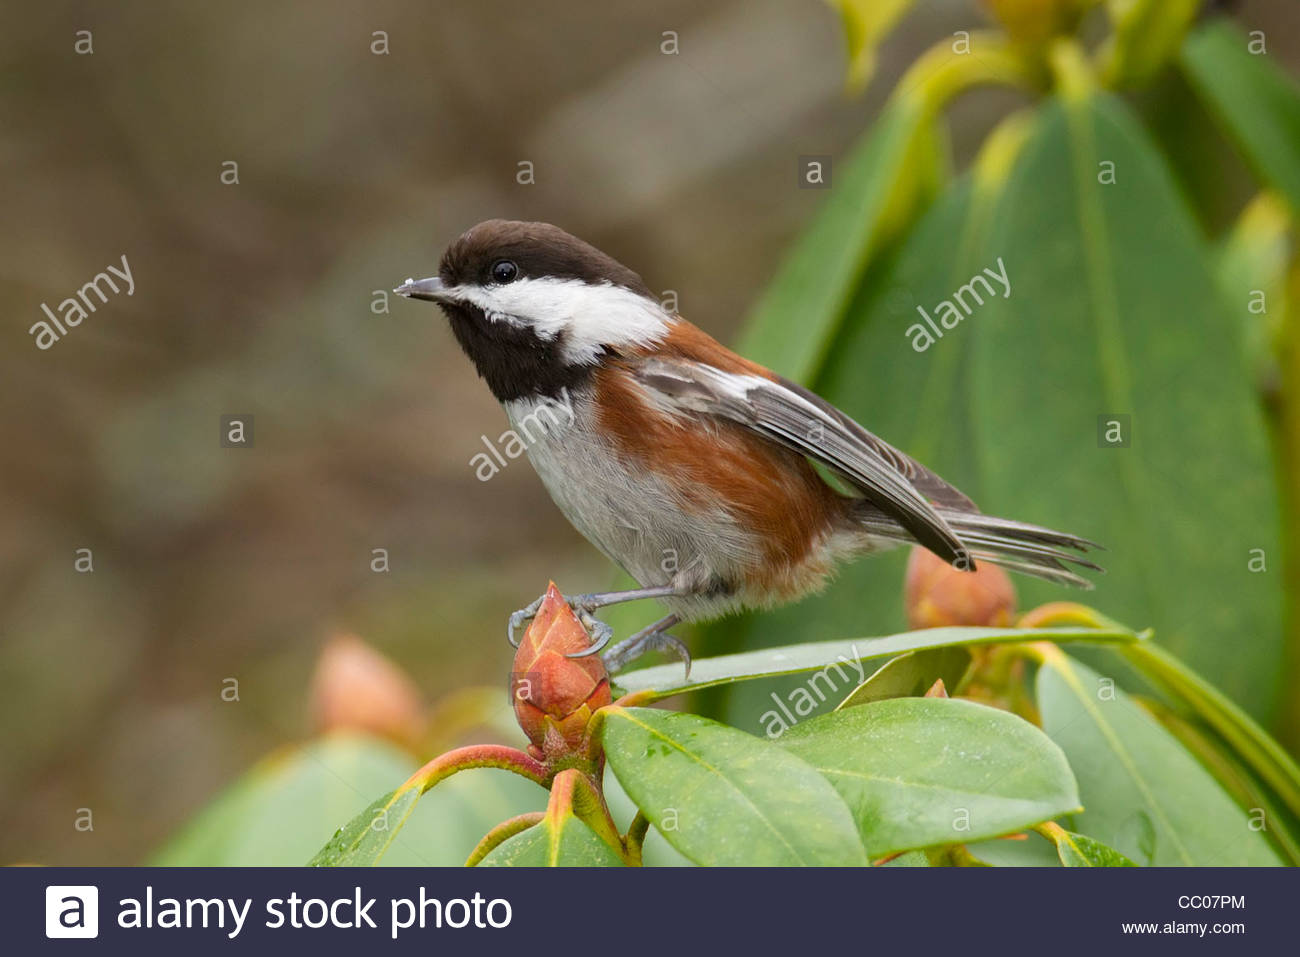 A chestnut-backed chickadee (Poecile rufescens) rests on a rhododendron bud. - Stock Image